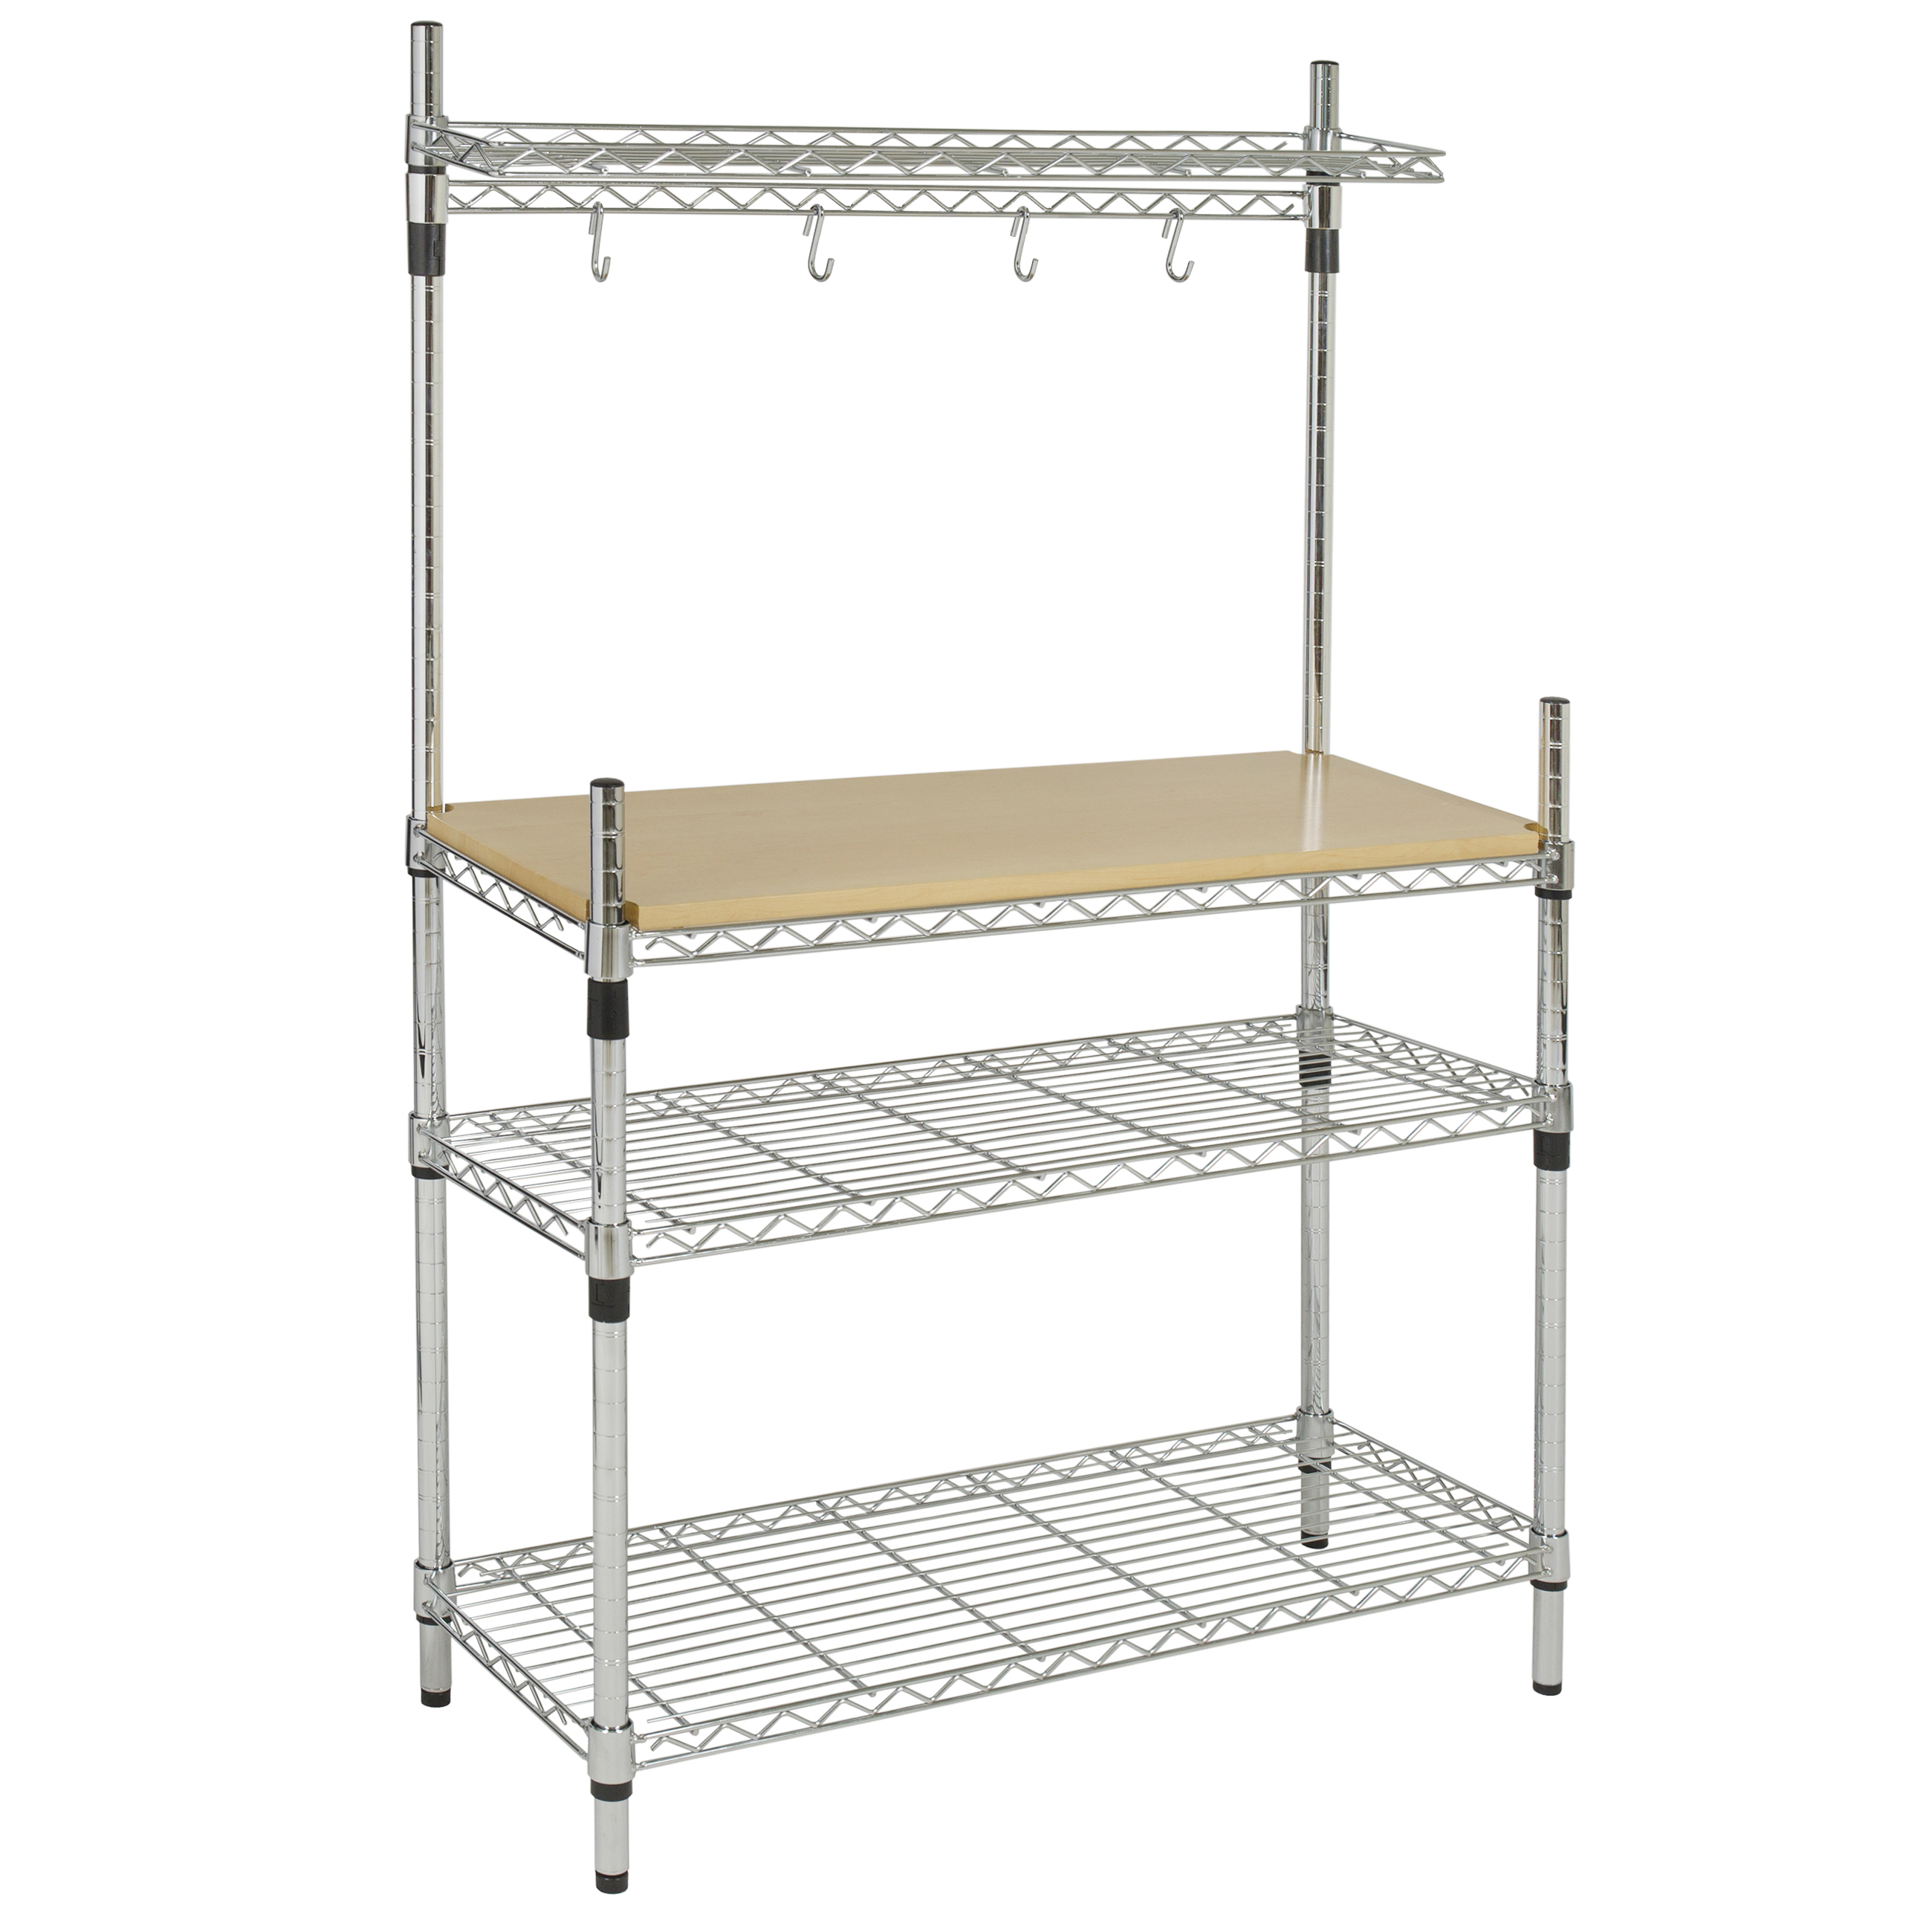 chrome kitchen storage racks bcp kitchen storage bakers rack chrome amp wood w top shelf 5421